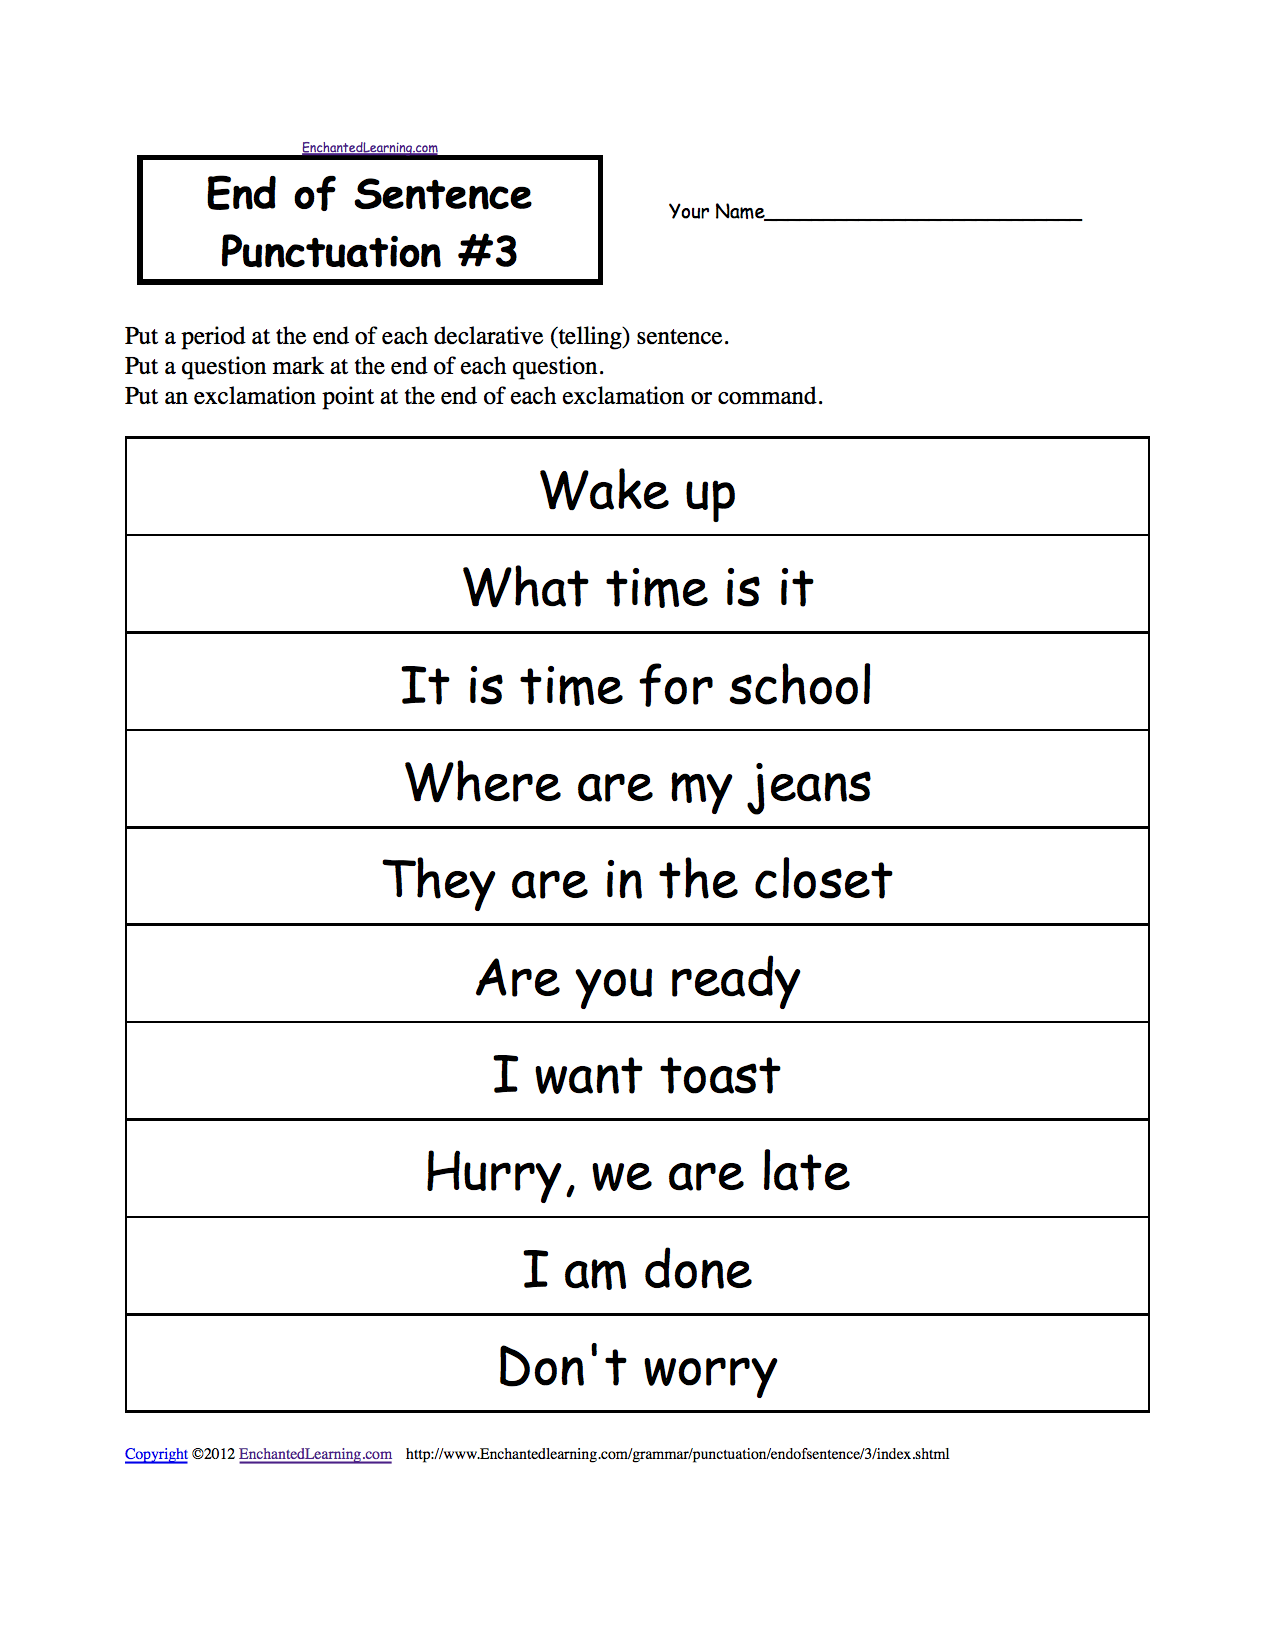 Uncategorized Capitalization Worksheets Middle School punctuate english 1 pinterest punctuation and worksheets teaching resources for primary schools moneysmart offers quality teachers from foundation to year 6 that